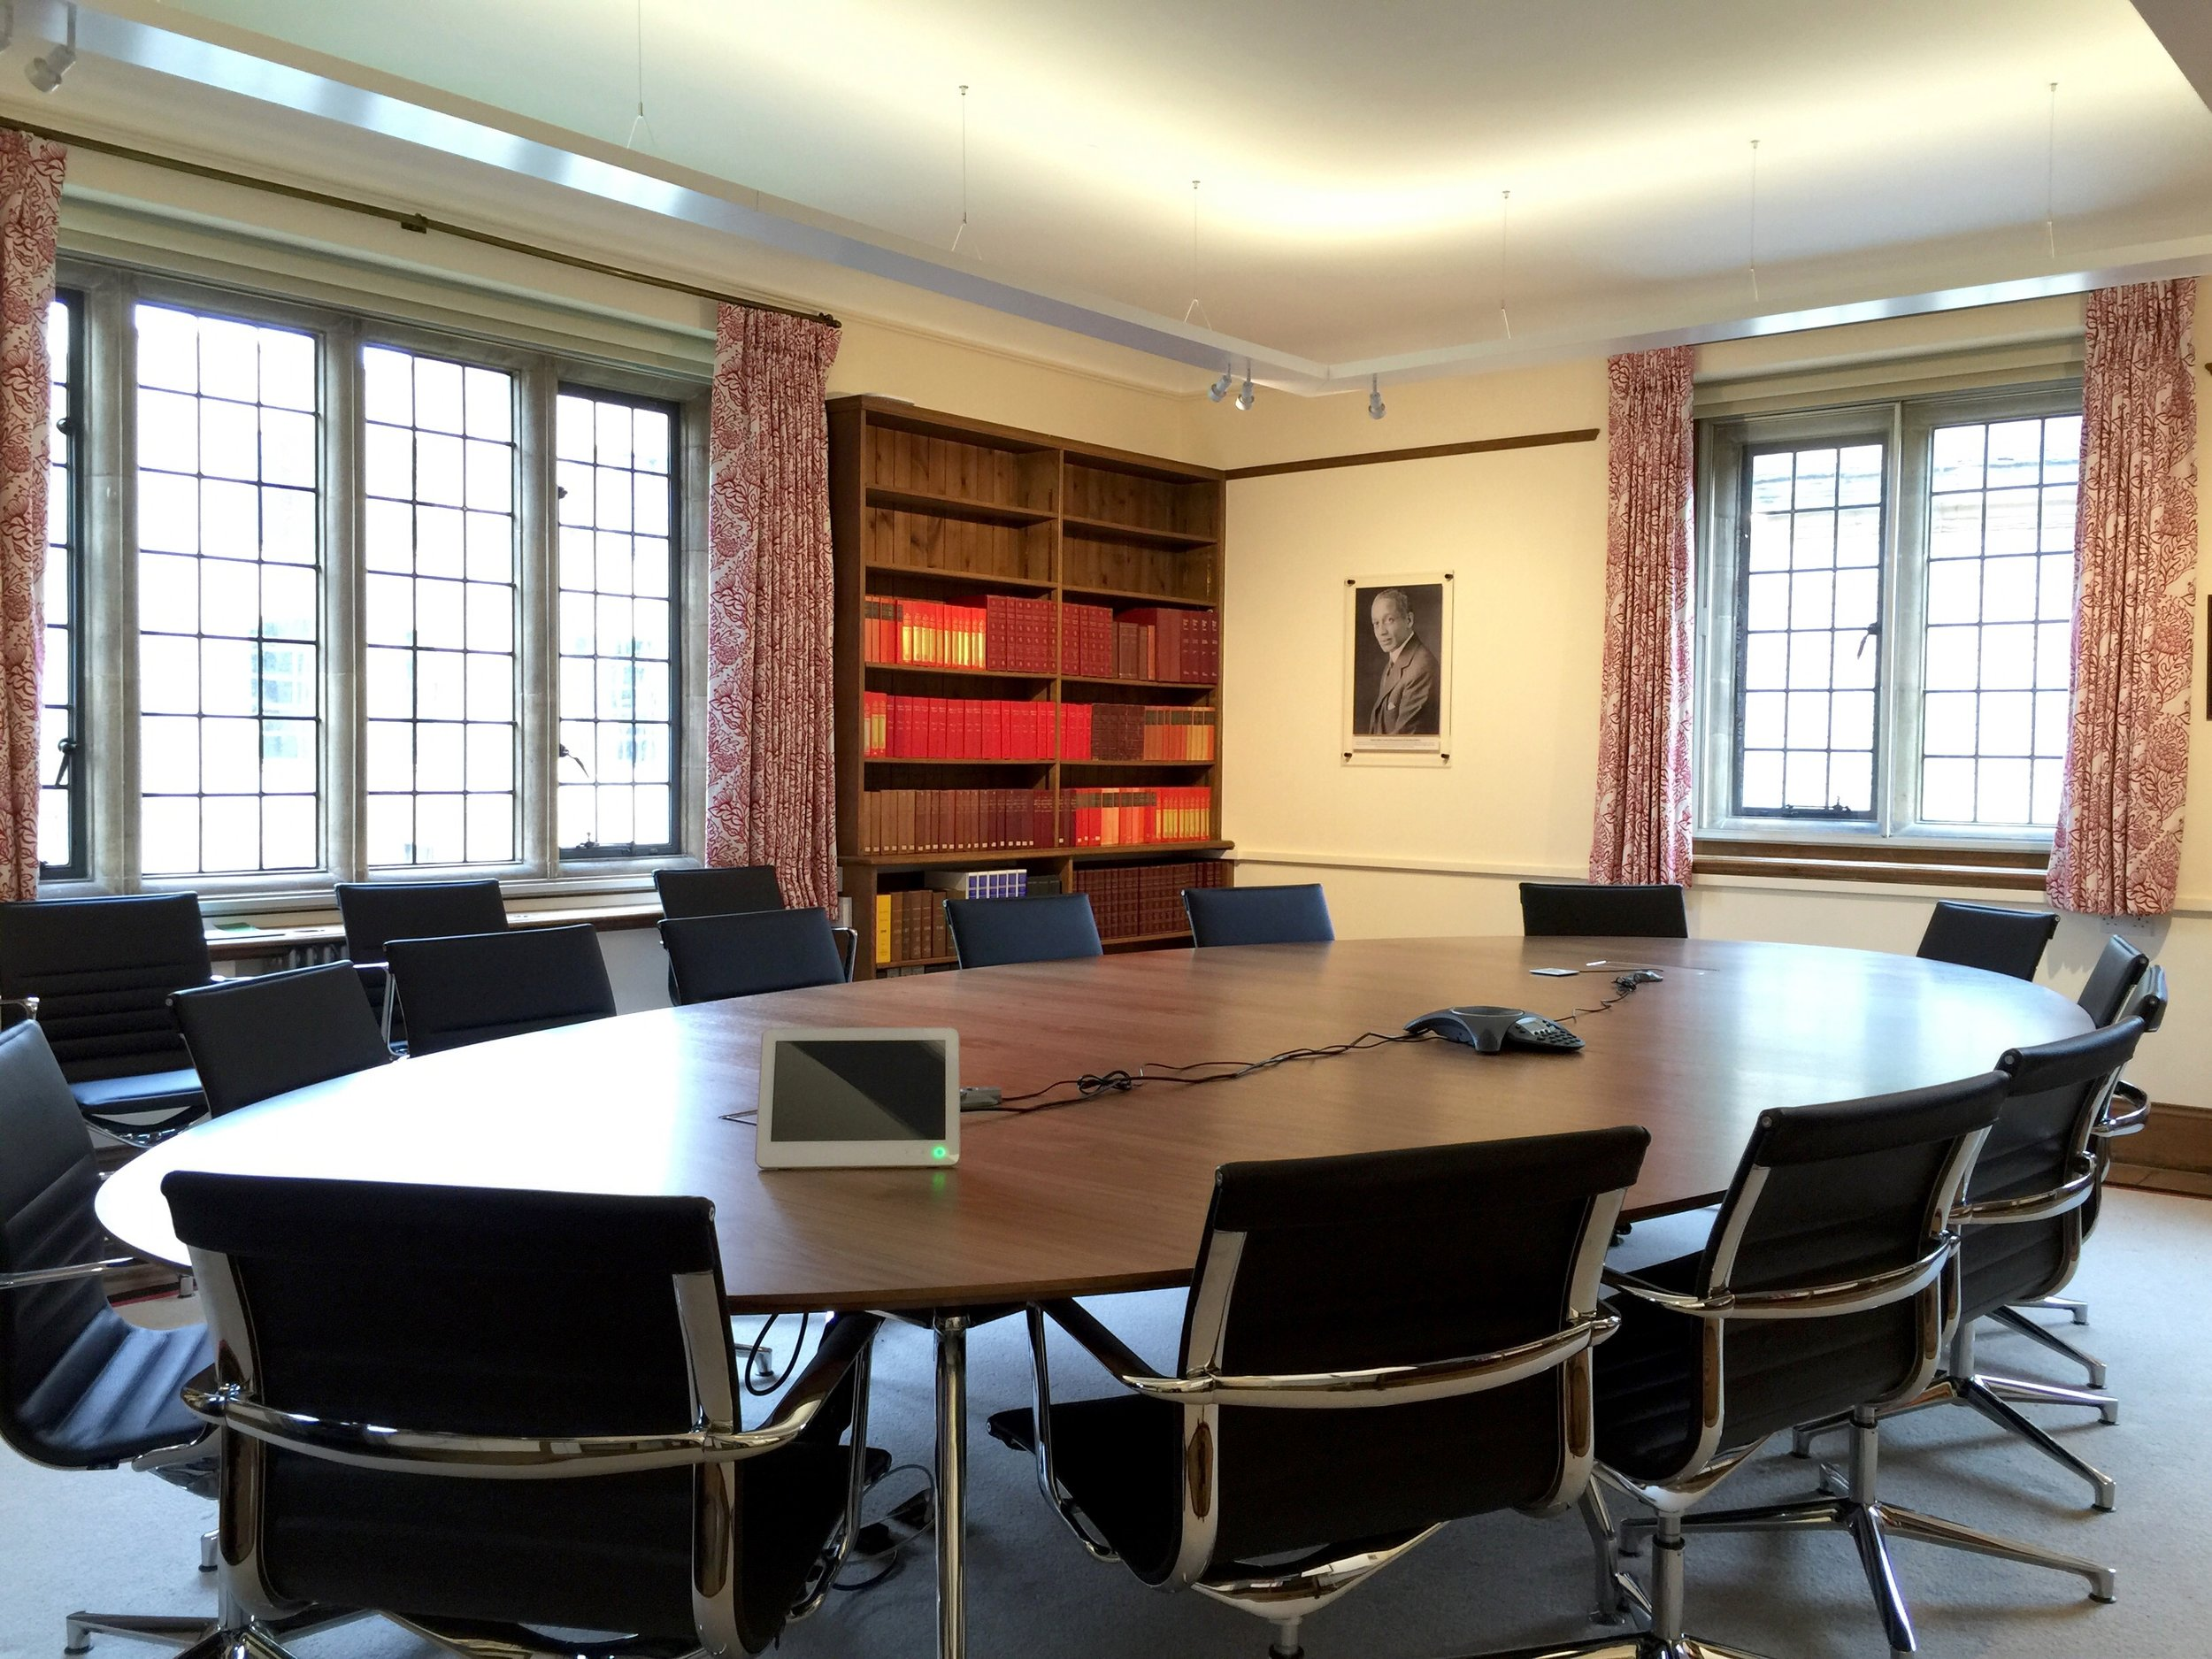 Rhodes_House_Michell_Room_with_table_and_AV4.jpg